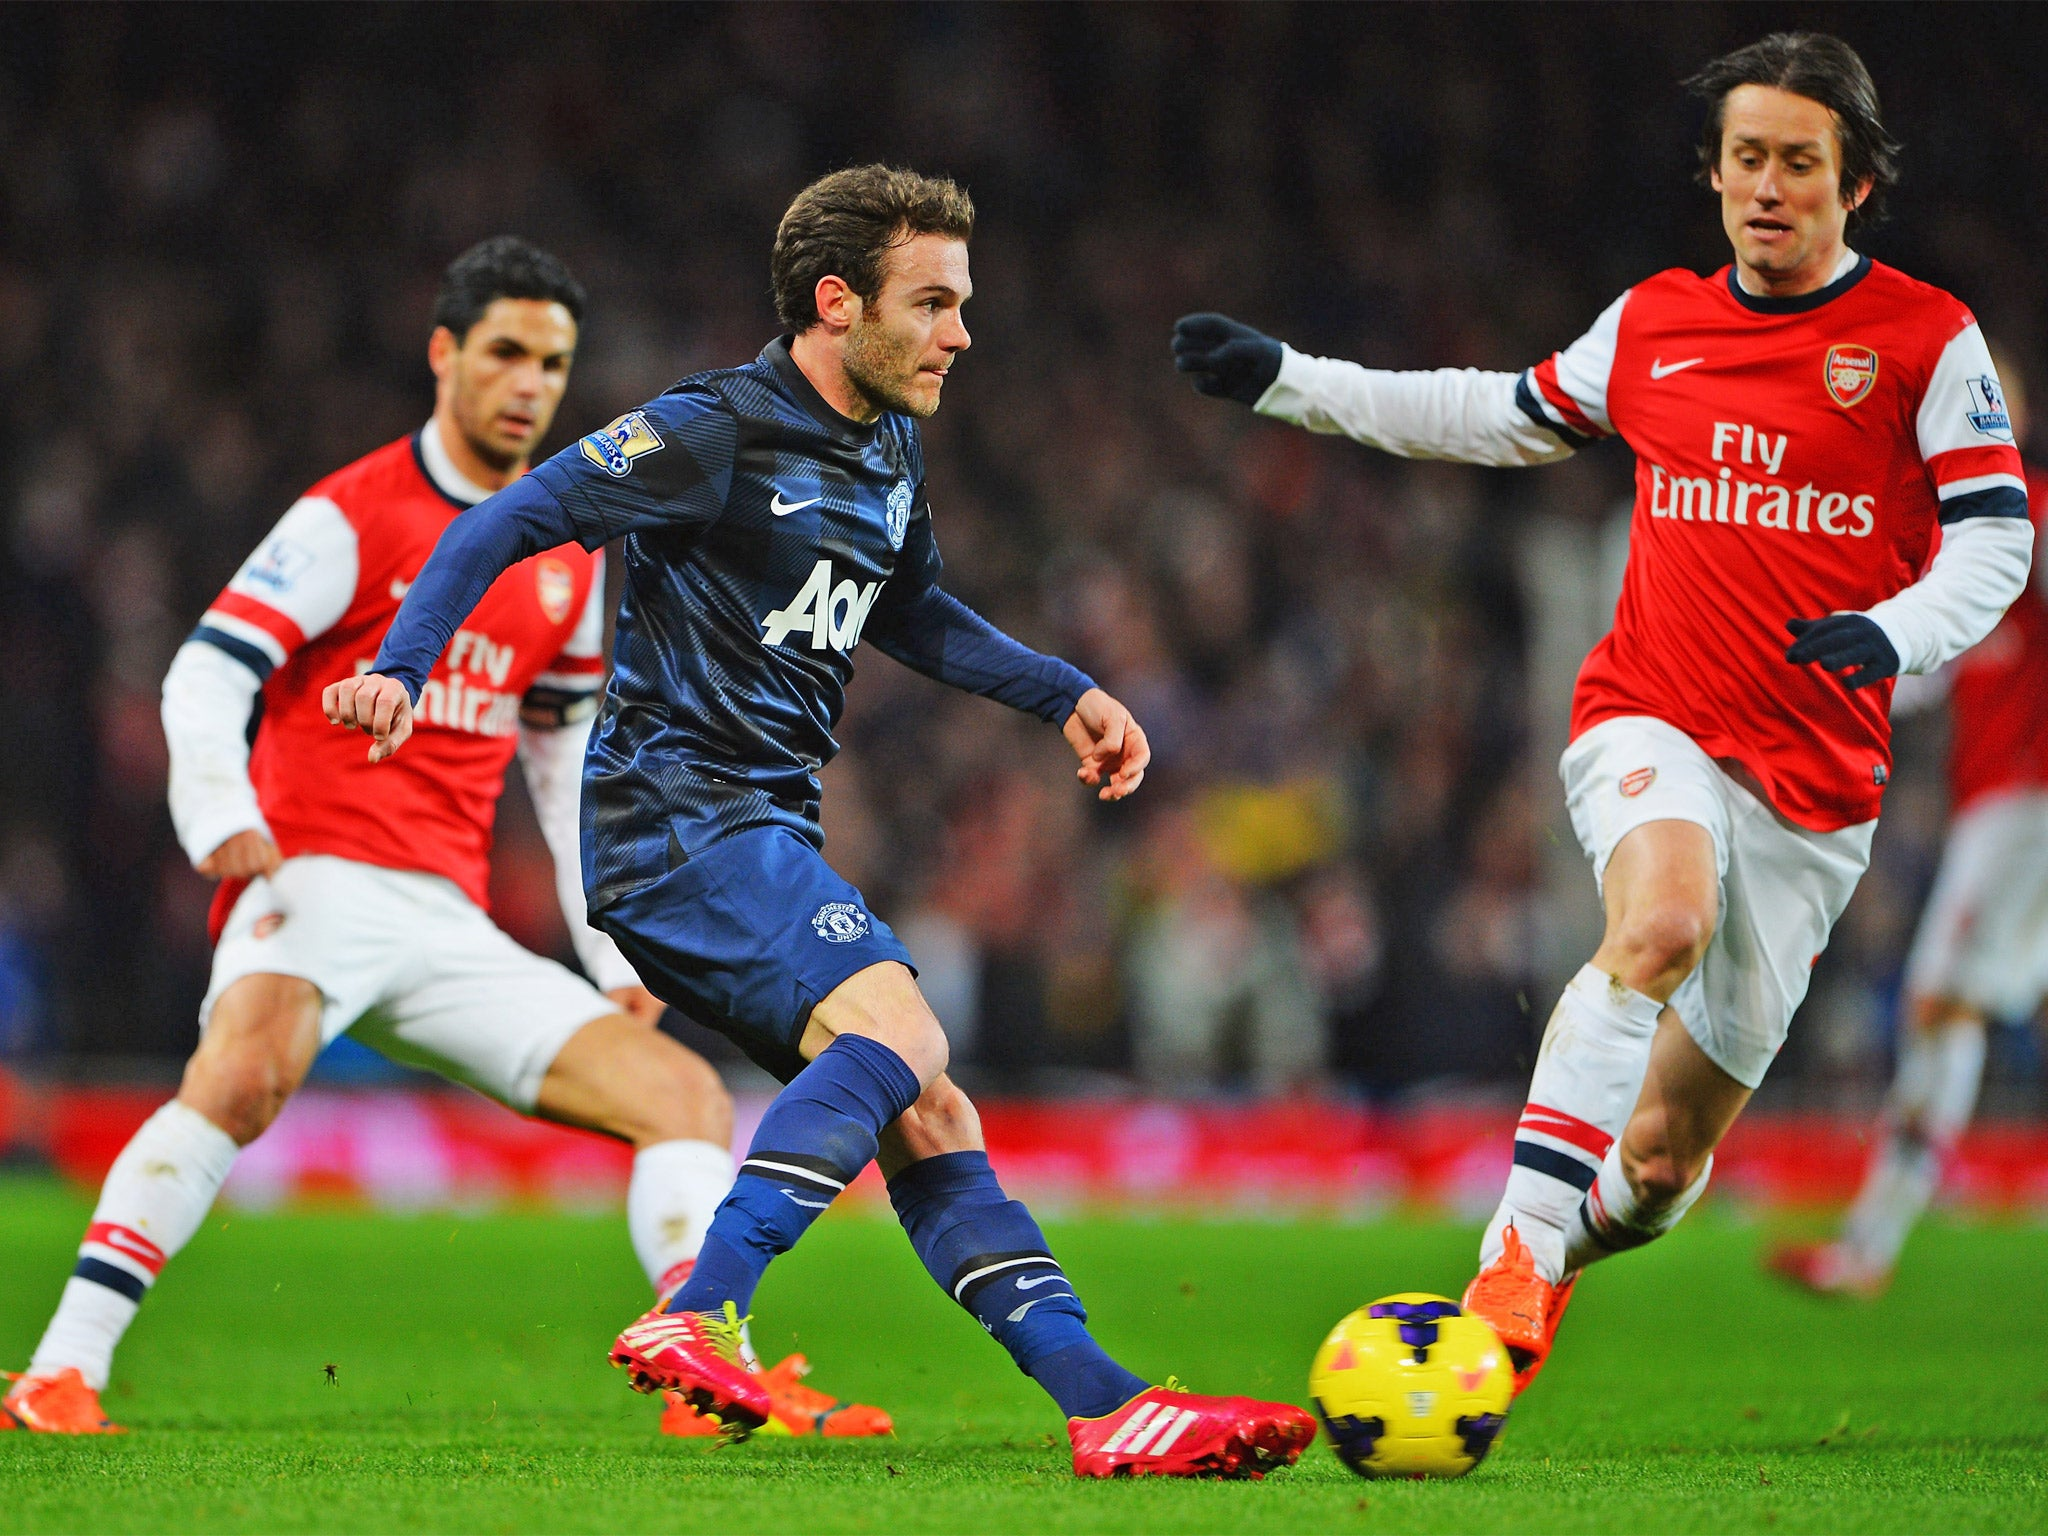 Ment Arsenal 0 Manchester United 0 Mesut Ozil And Juan